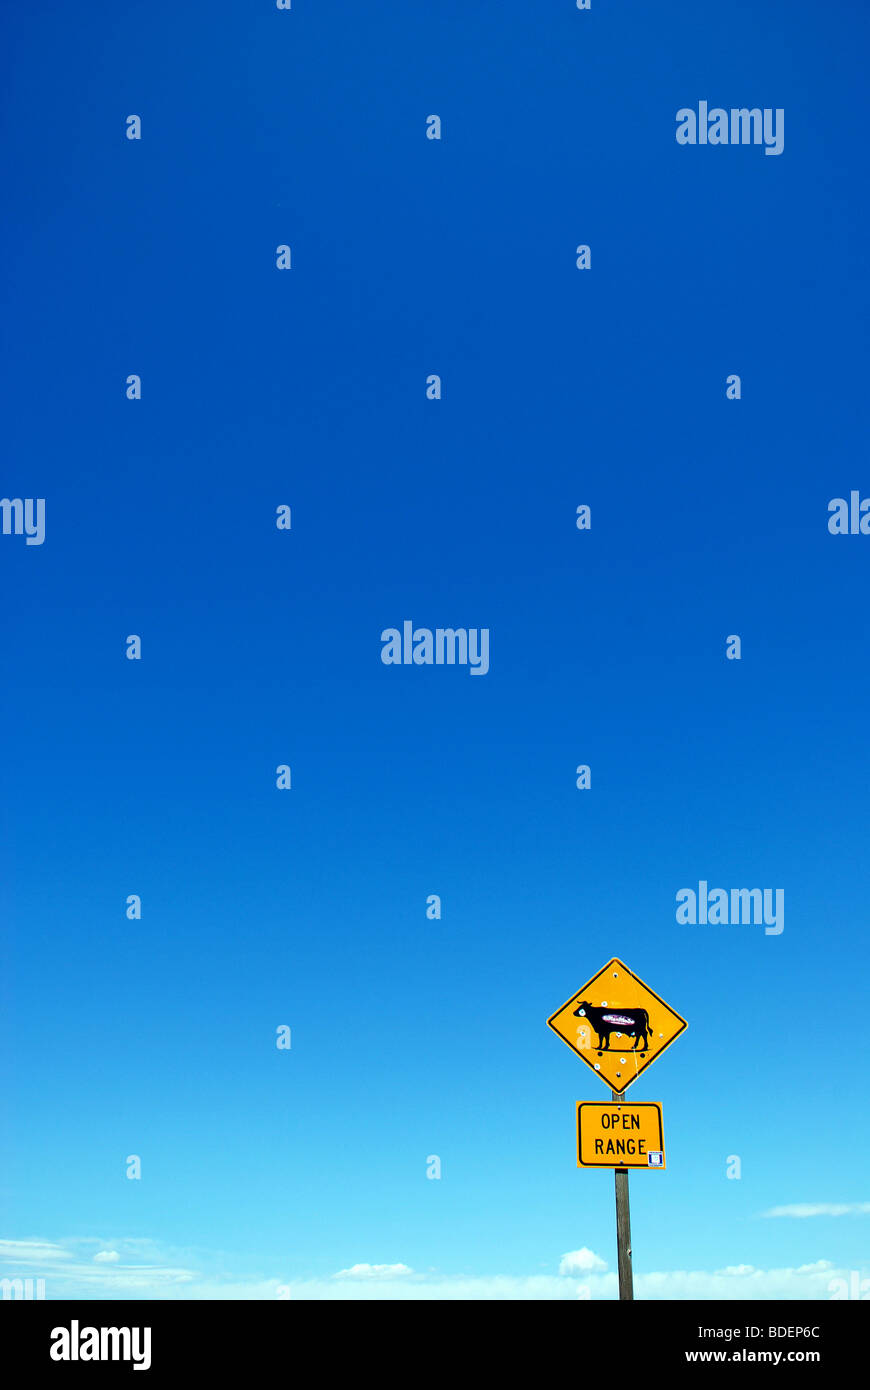 Yellow 'Open Range' traffic sign with bullet holes against clear blue sky. - Stock Image